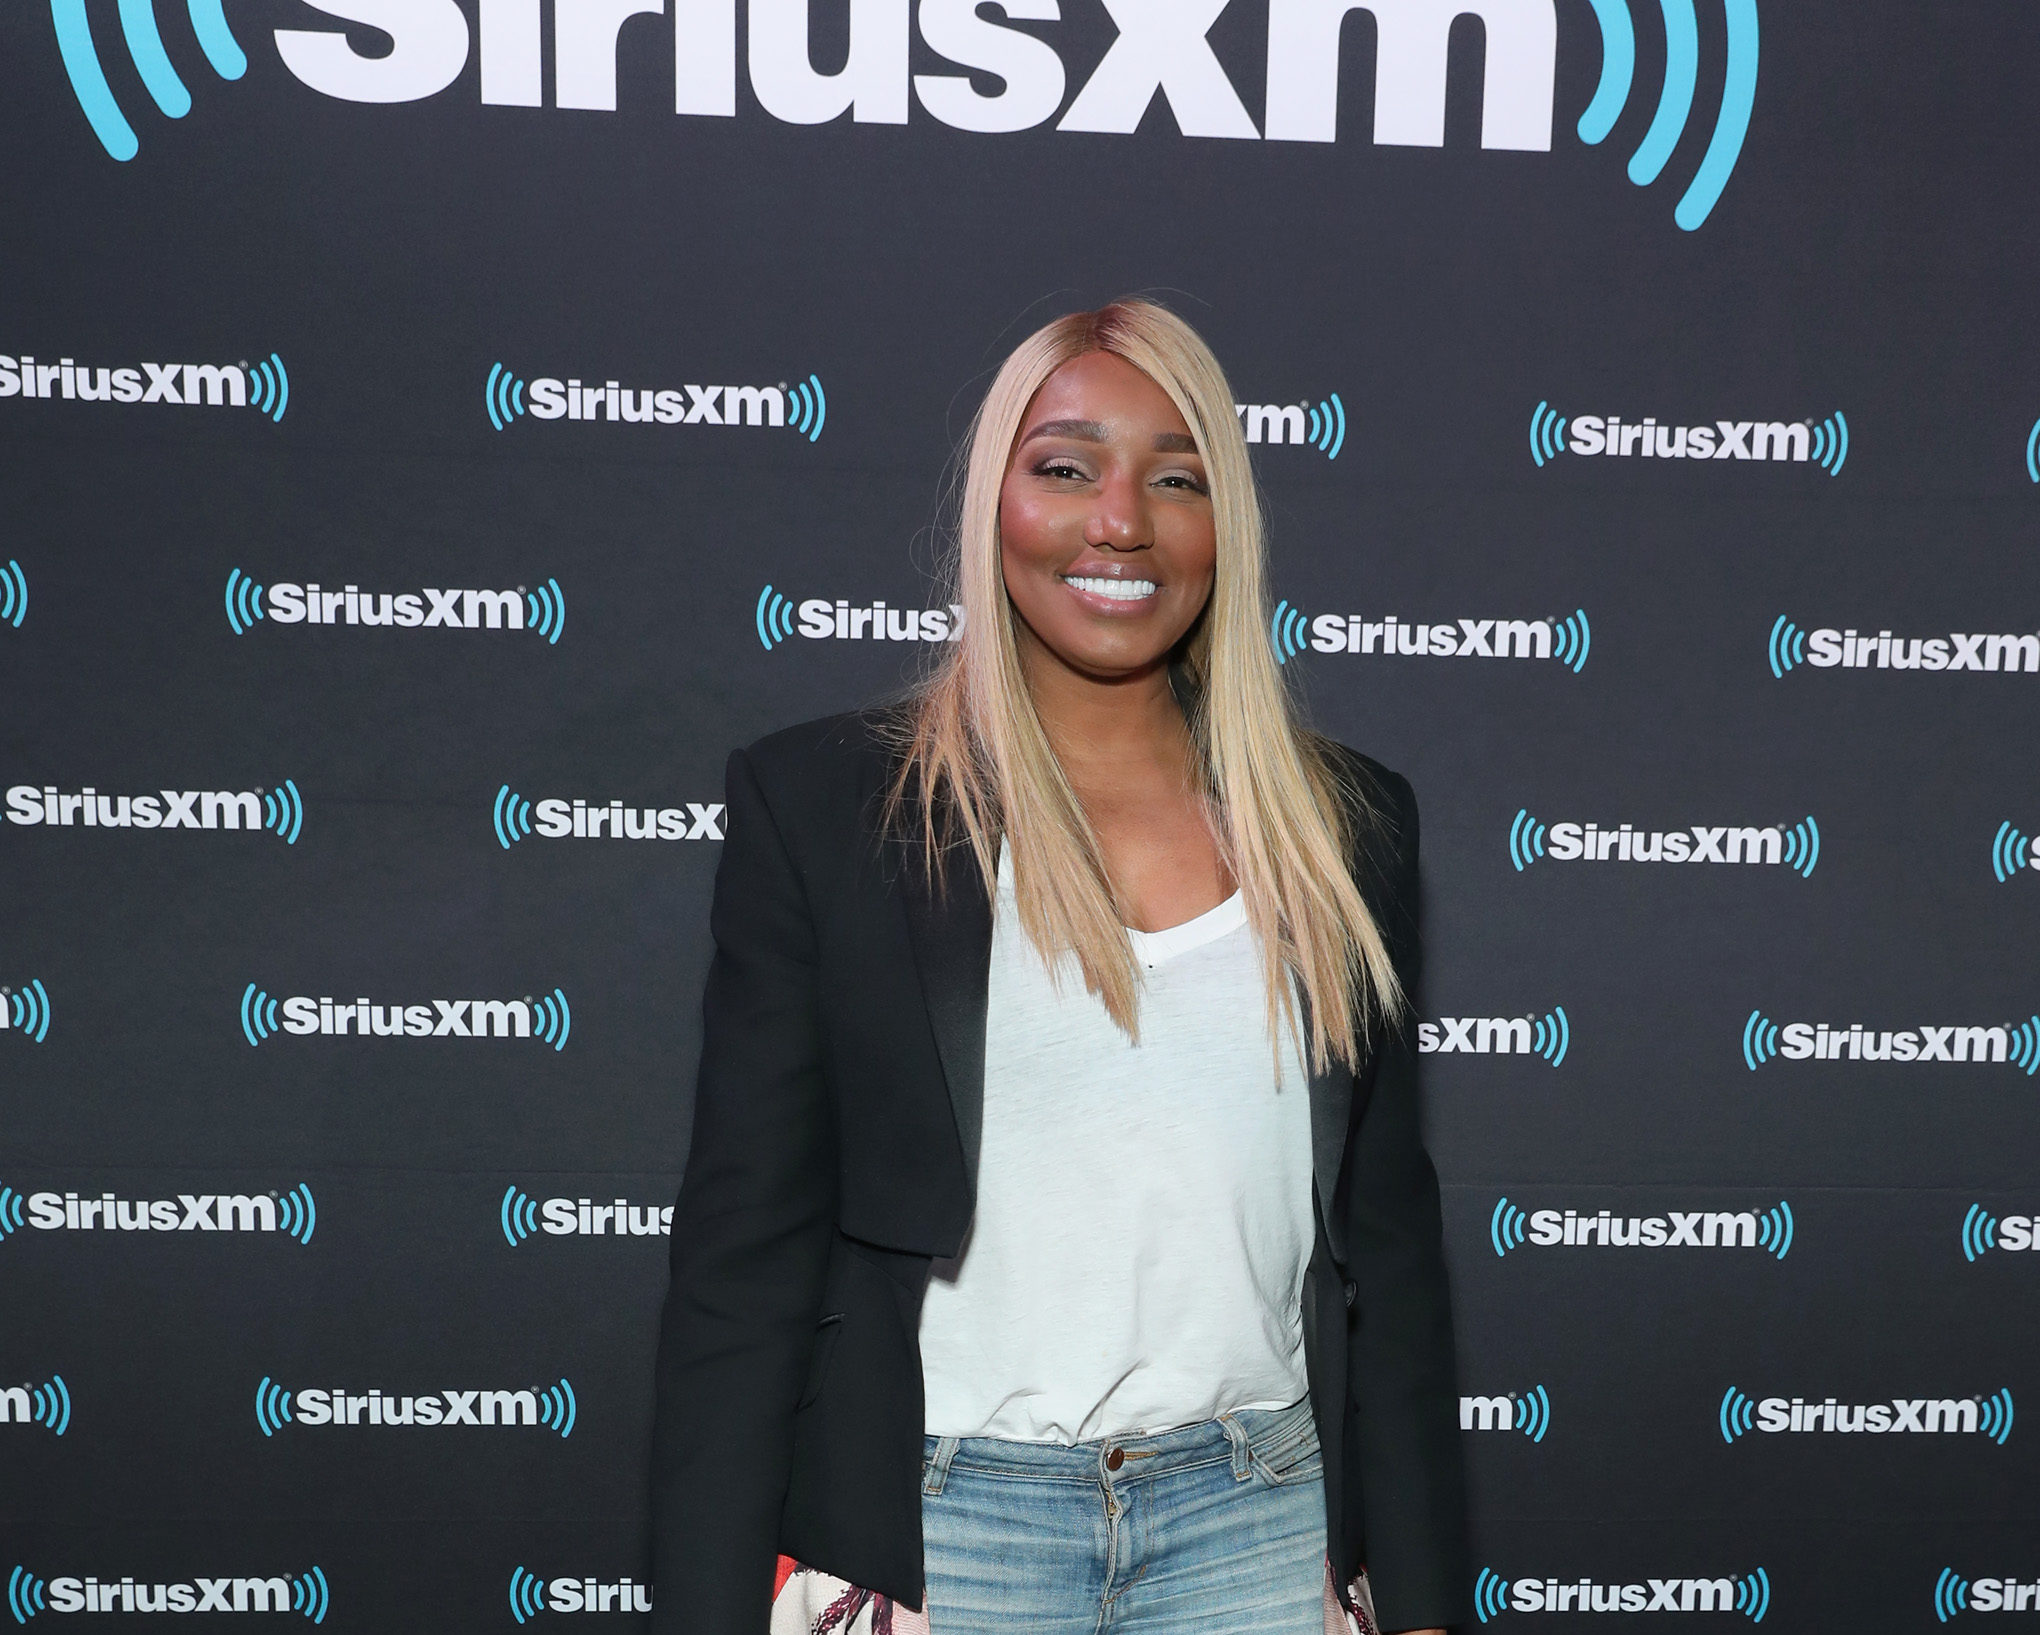 NeNe Leakes Is Glowing From Within In The Latest Photo She Shared